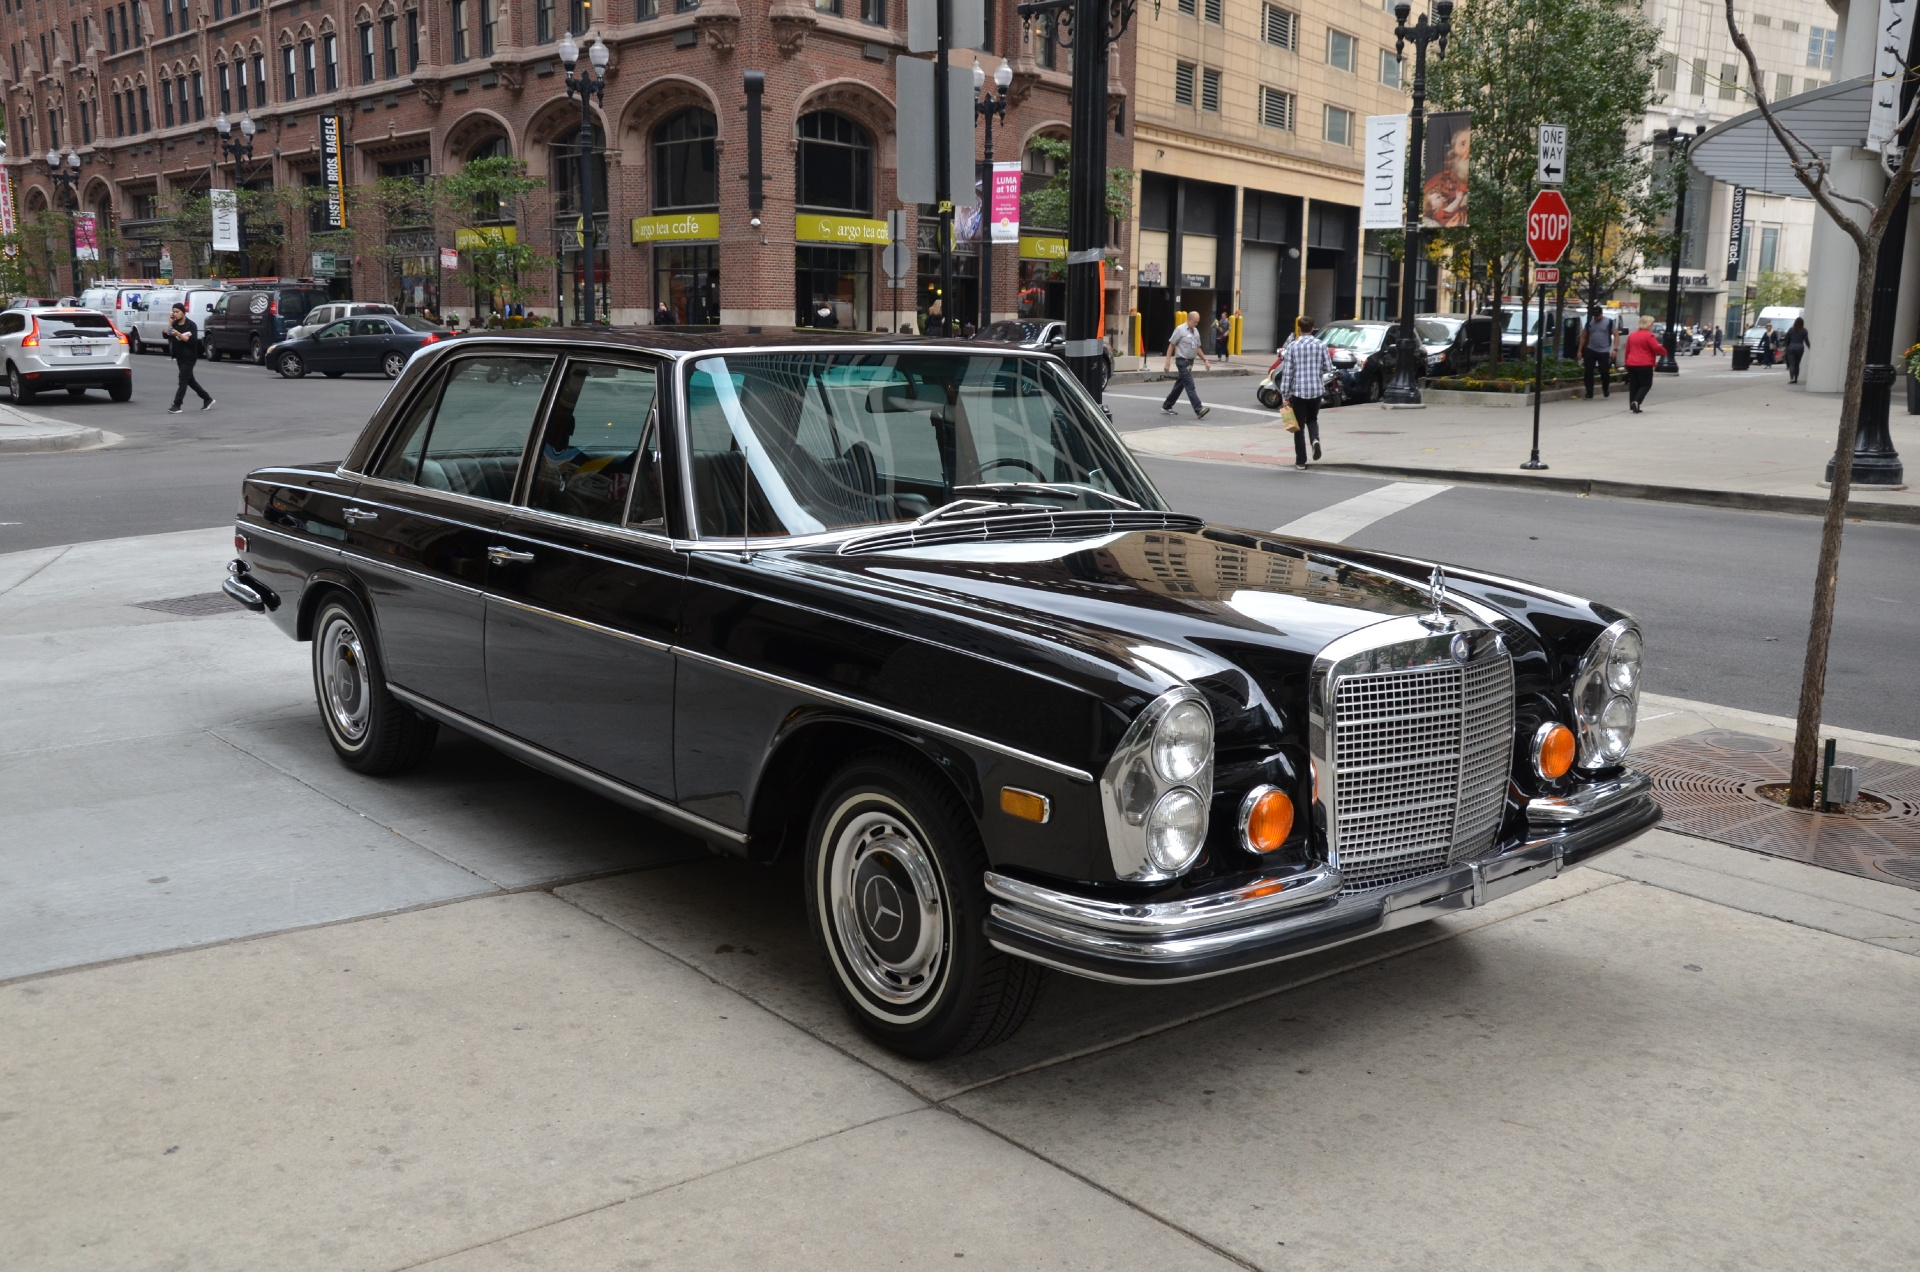 1973 mercedes benz 280 sel stock r216ab for sale near for Mercedes benz parts chicago